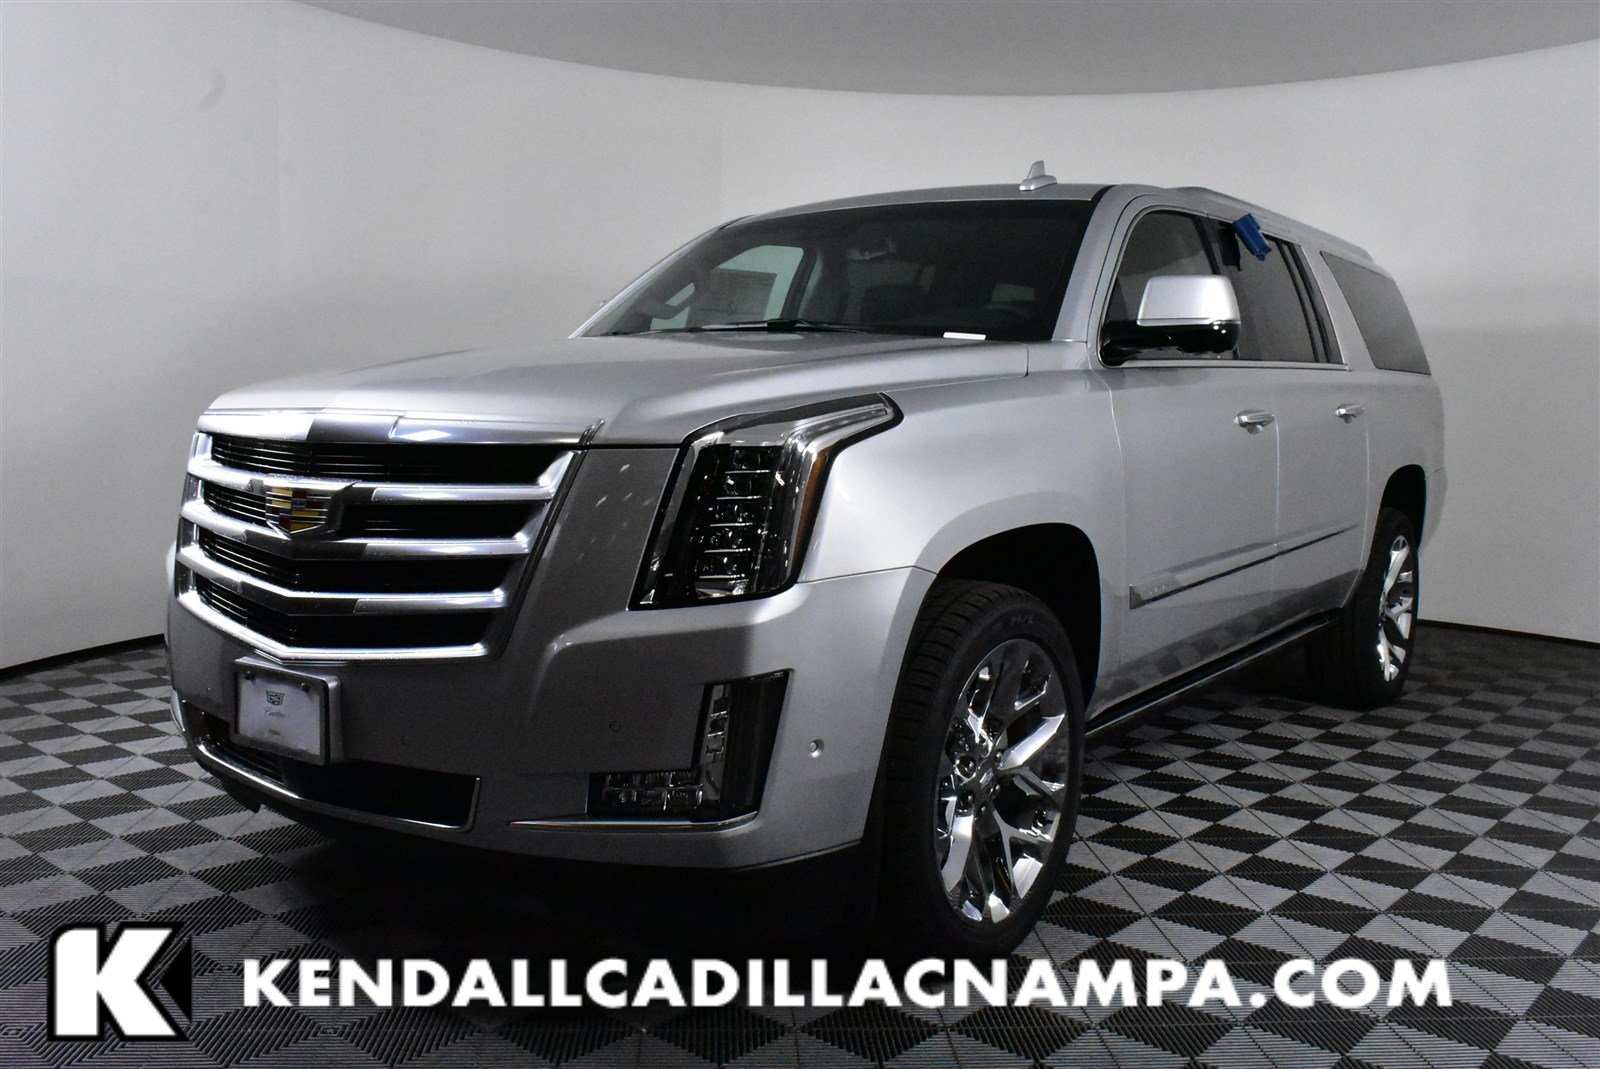 98 The 2019 Cadillac Escalade Vsport Configurations